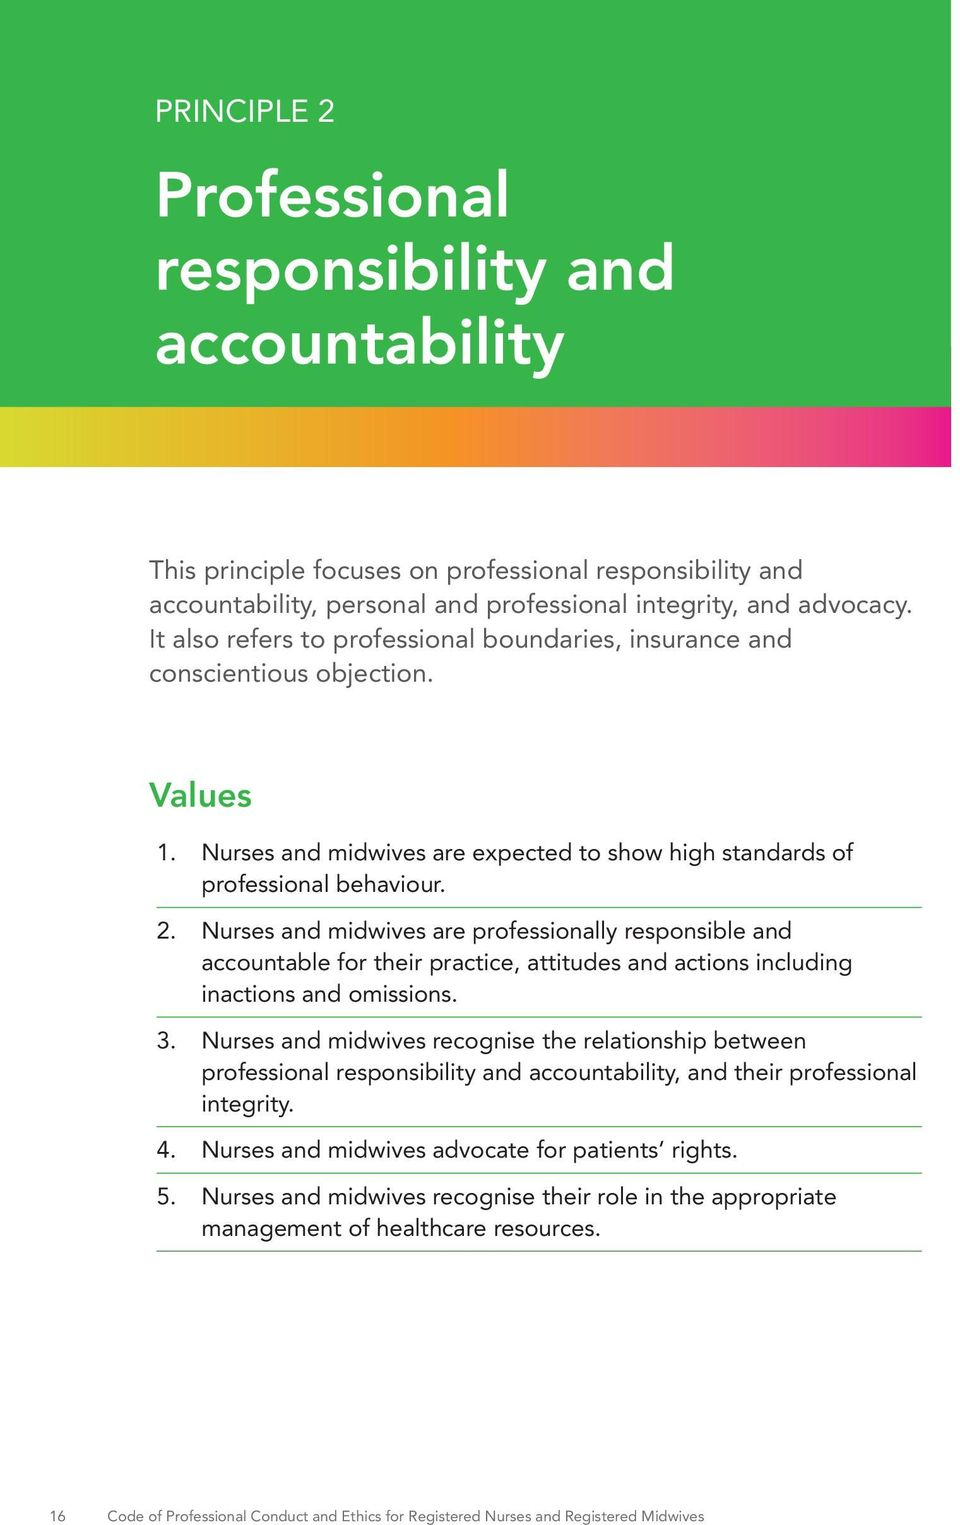 Nurses and midwives are professionally responsible and accountable for their practice, attitudes and actions including inactions and omissions. 3.